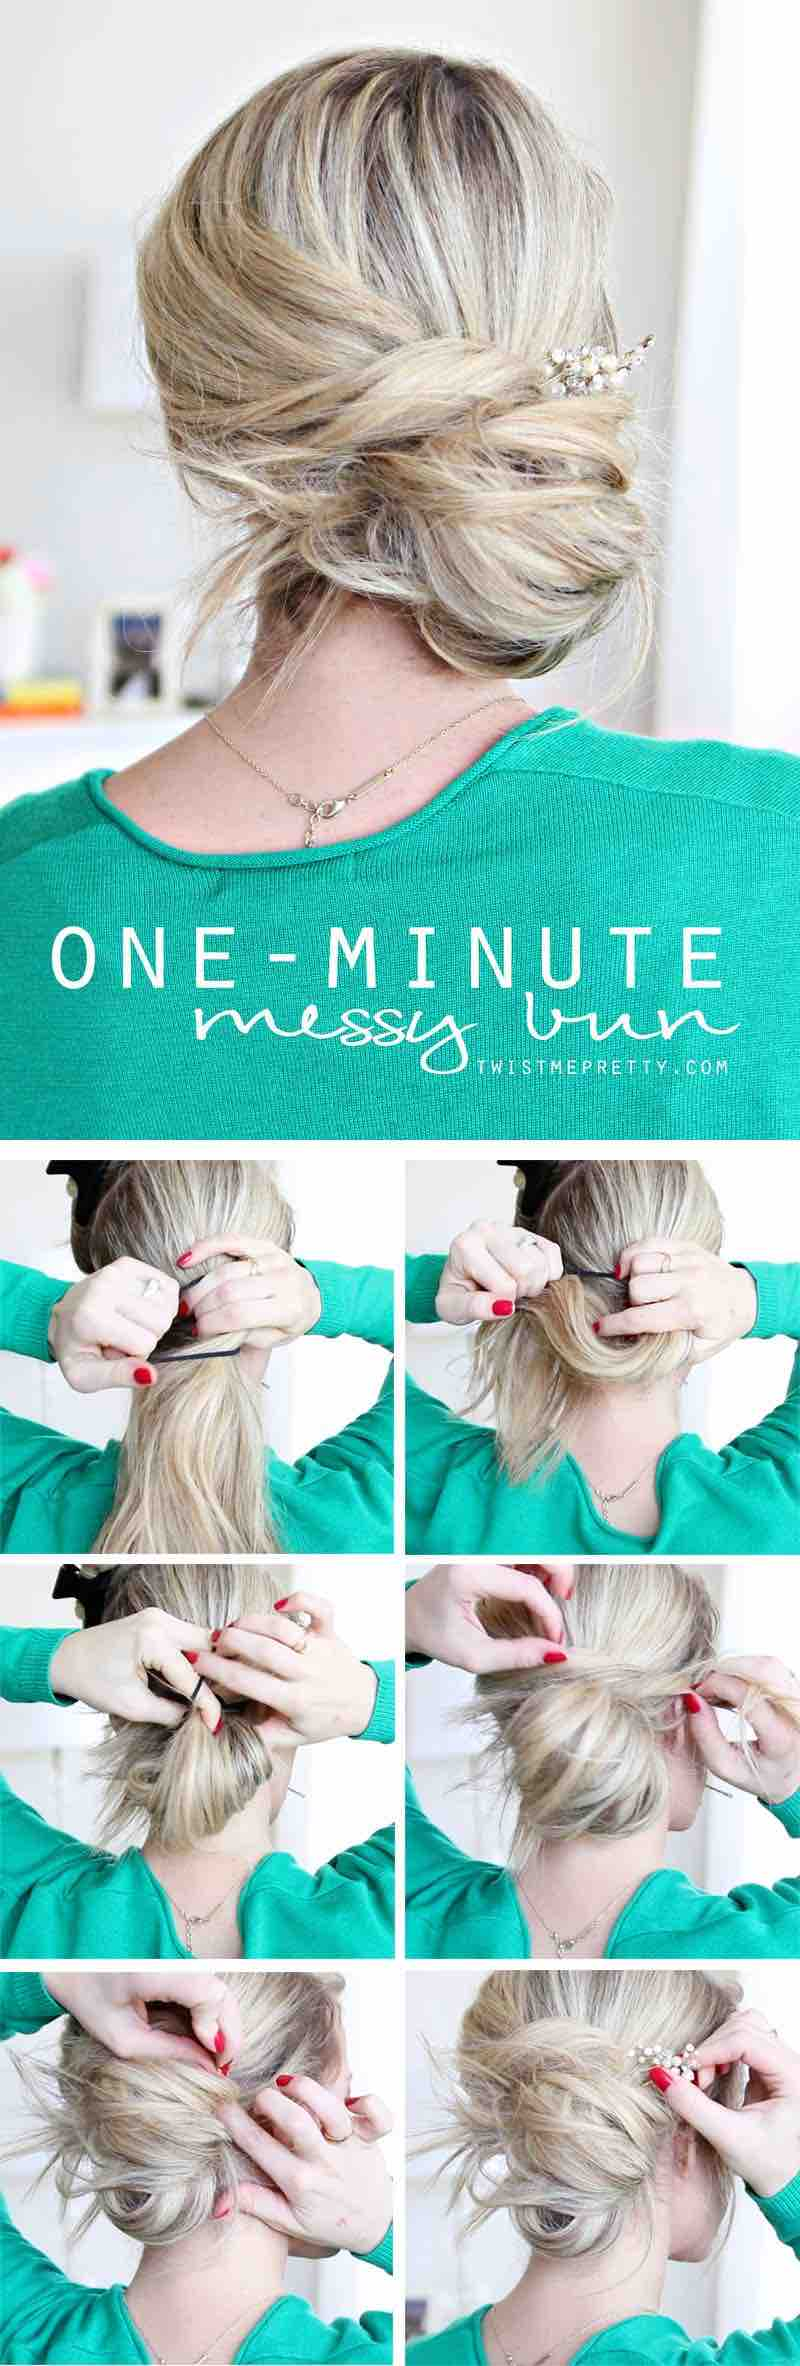 20 Quick And Easy Hairstyle For Busy Women